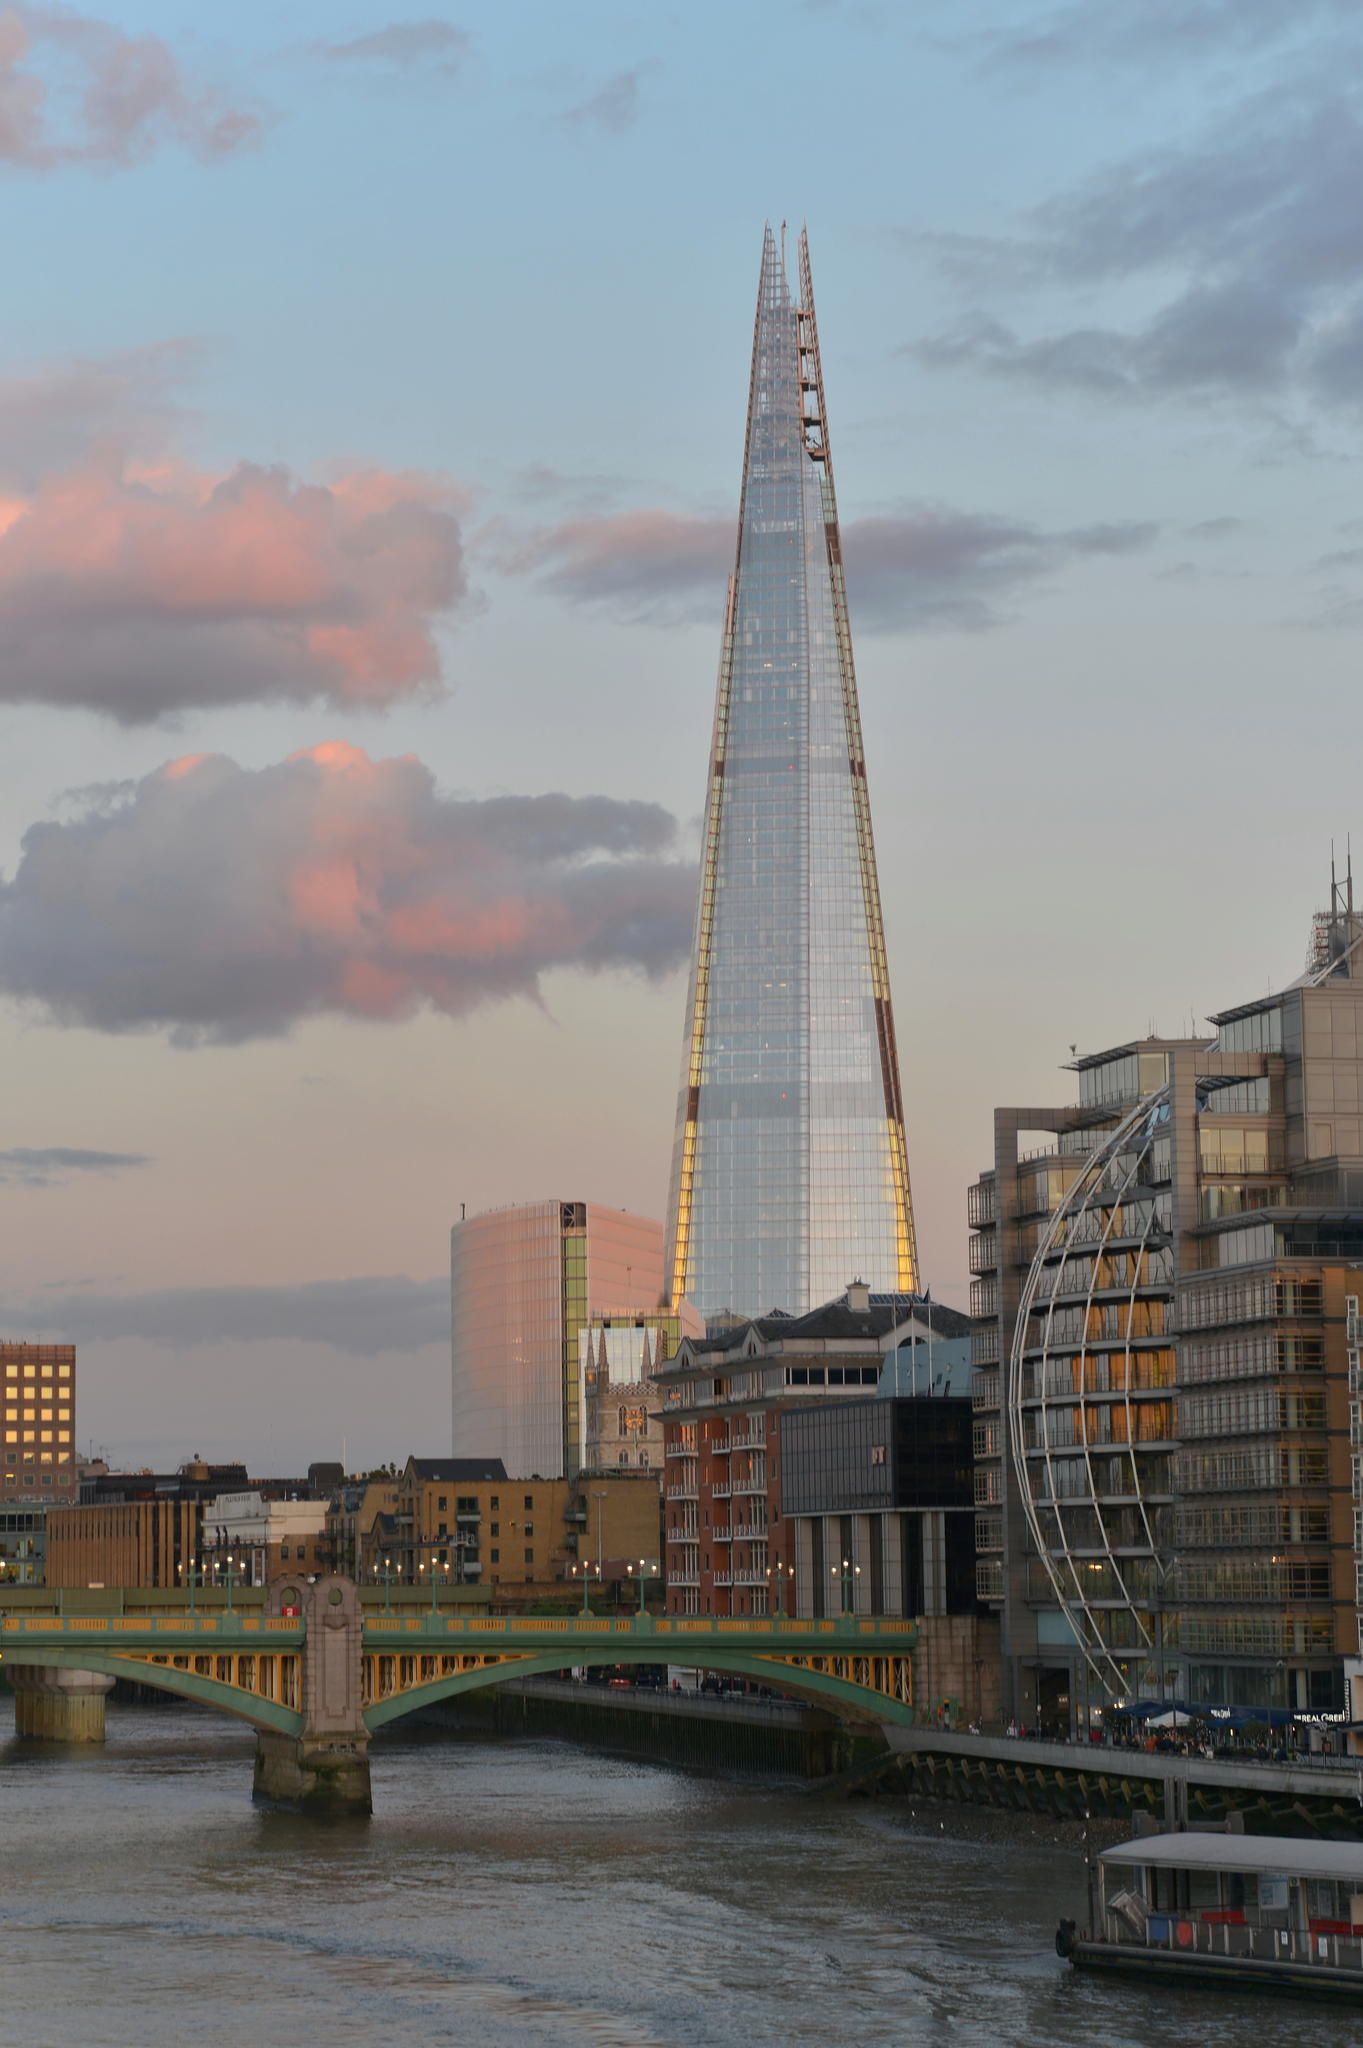 The Shard in London by Angelo Ferraris on 500px